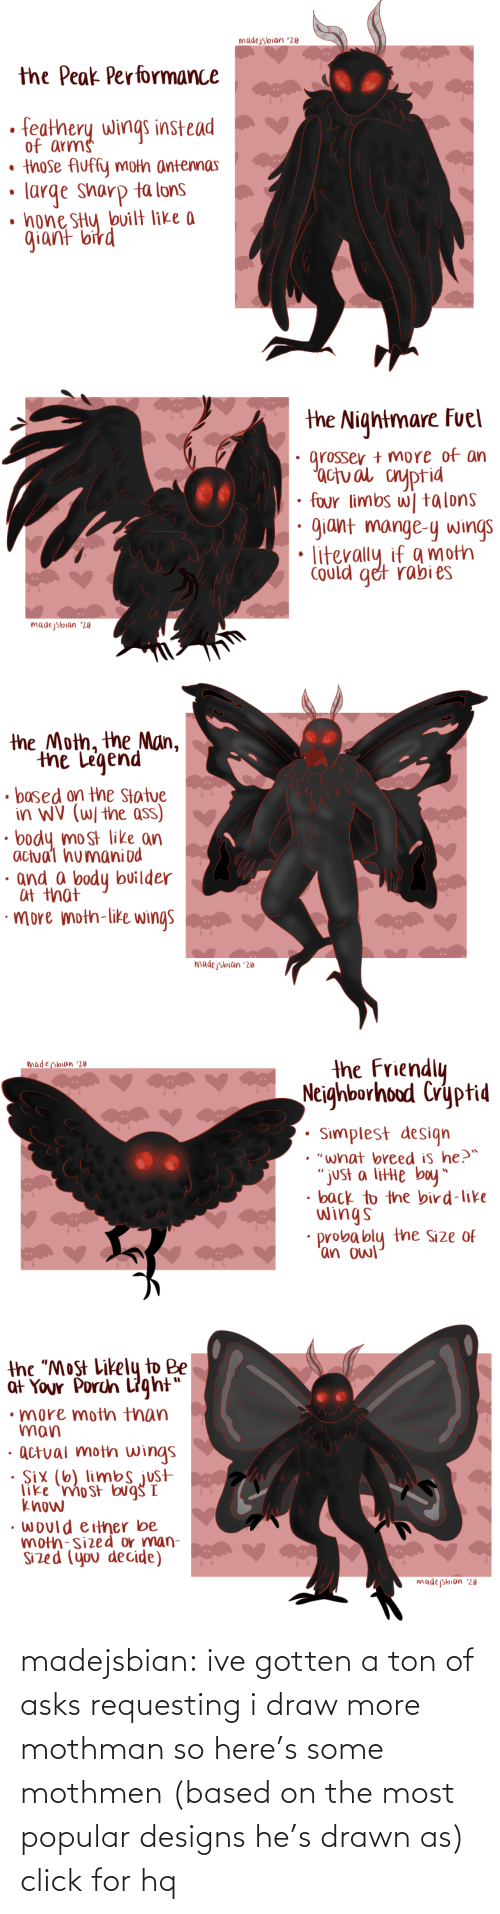 "Asks: madejsbian '20  the Peak Performance  feathery wings instead  of arms  • those Auffy moth antennas  large sharp ta lons  • hone SHy bvilt like a  giant bird   the Nightmare Fuel  grosser + more of an  'actual cnyptid  four limbs w| talons  giant mange-y wings  Could get rabi es  madejsbian '20   the Moth, the Man,  the Legend  • based on the Statue  in WV (W/ the ass)  body most like an  actual humaniod  · and a body builder  at that  ·more moth-like wings  madejsbian '20   the Friendly  Neighborhood Cryptid  madejsbian '20  Simplest design  • ""what breed is he?™  ""just a litte boy""  • back to the bird-like  wings  probably the Size of  'an owl   the ""Most Likely to Be  at Your Porch Light""  •more moth than  man  · actual moth wings  · Six (6) limbs just  like 'mo st bug I  know  • would either be  moth-sized or man-  Sized (you decide)  madejsbian '20 madejsbian: ive gotten a ton of asks requesting i draw more mothman so here's some mothmen (based on the most popular designs he's drawn as)